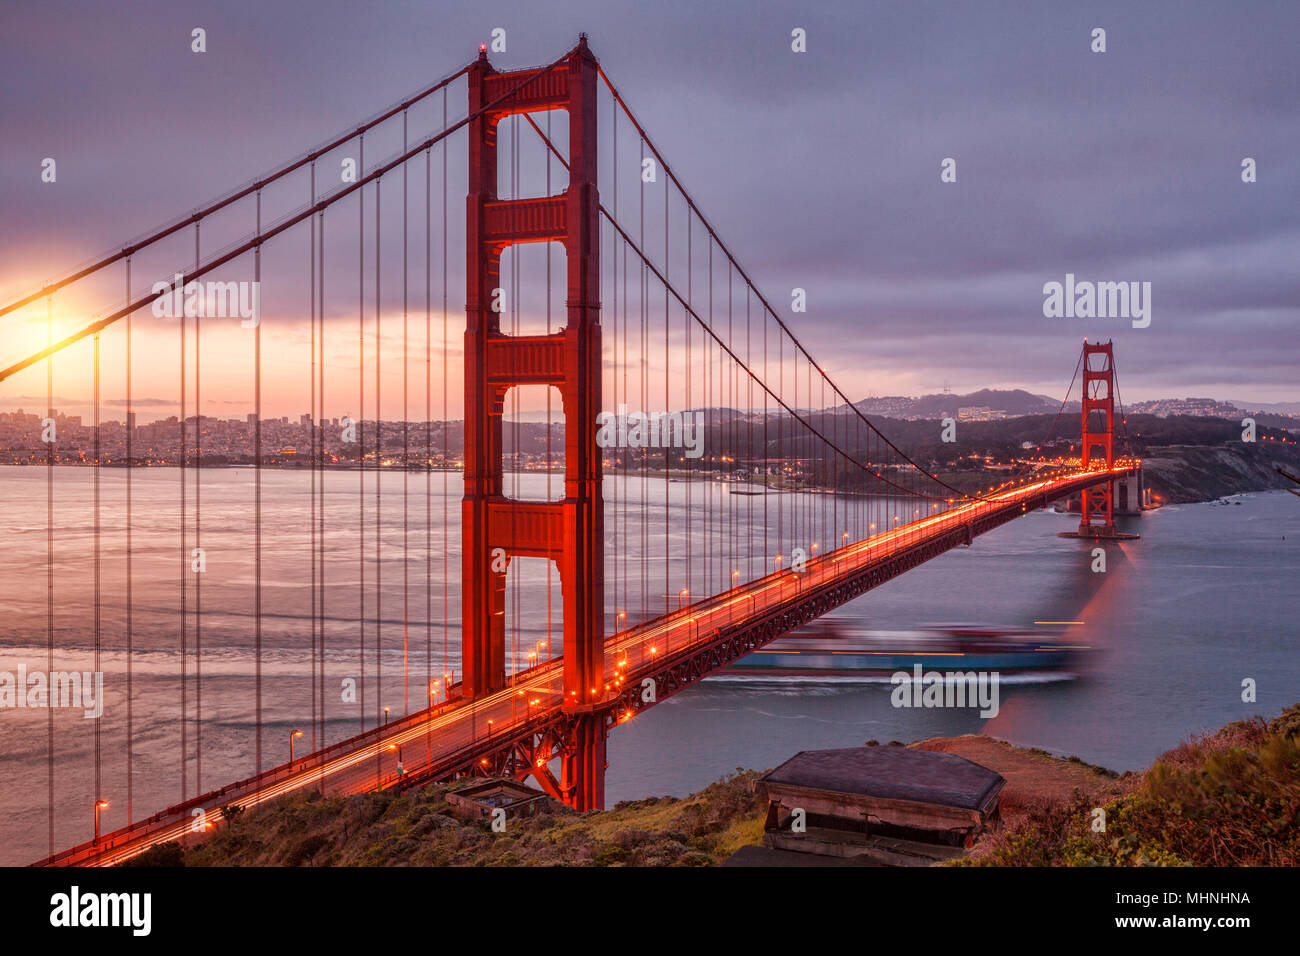 The Golden Gate Bridge, San Francisco, from Battery Spencer at dawn, with traffic on the bridge and a container ship sailing out of the Bay. - Stock Image